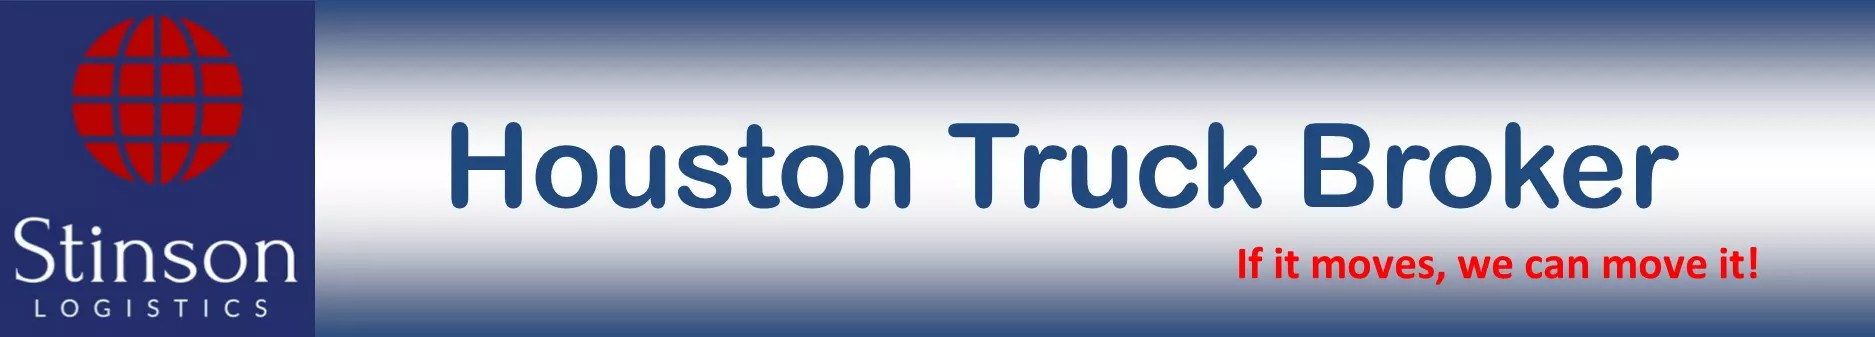 Houston Truck Broker - Stinson Logistics, LLC - Domestic Trucking - Freight Hauling - Shipping company - Freight Shipping